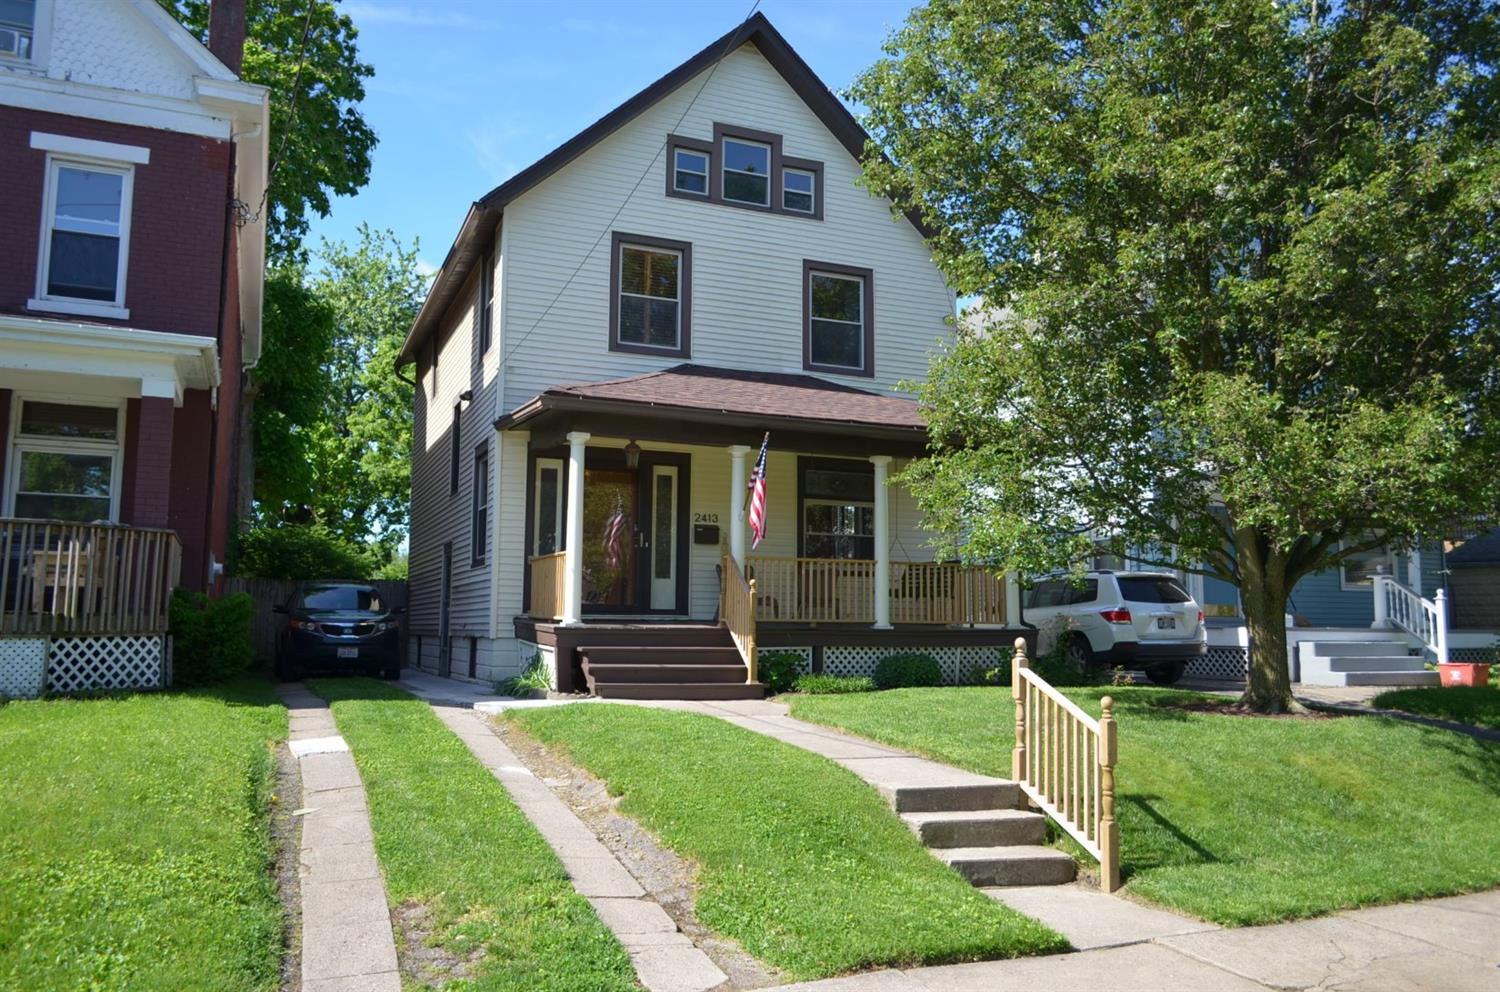 Photo 1 for 2413 Kenilworth Ave Norwood, OH 45212